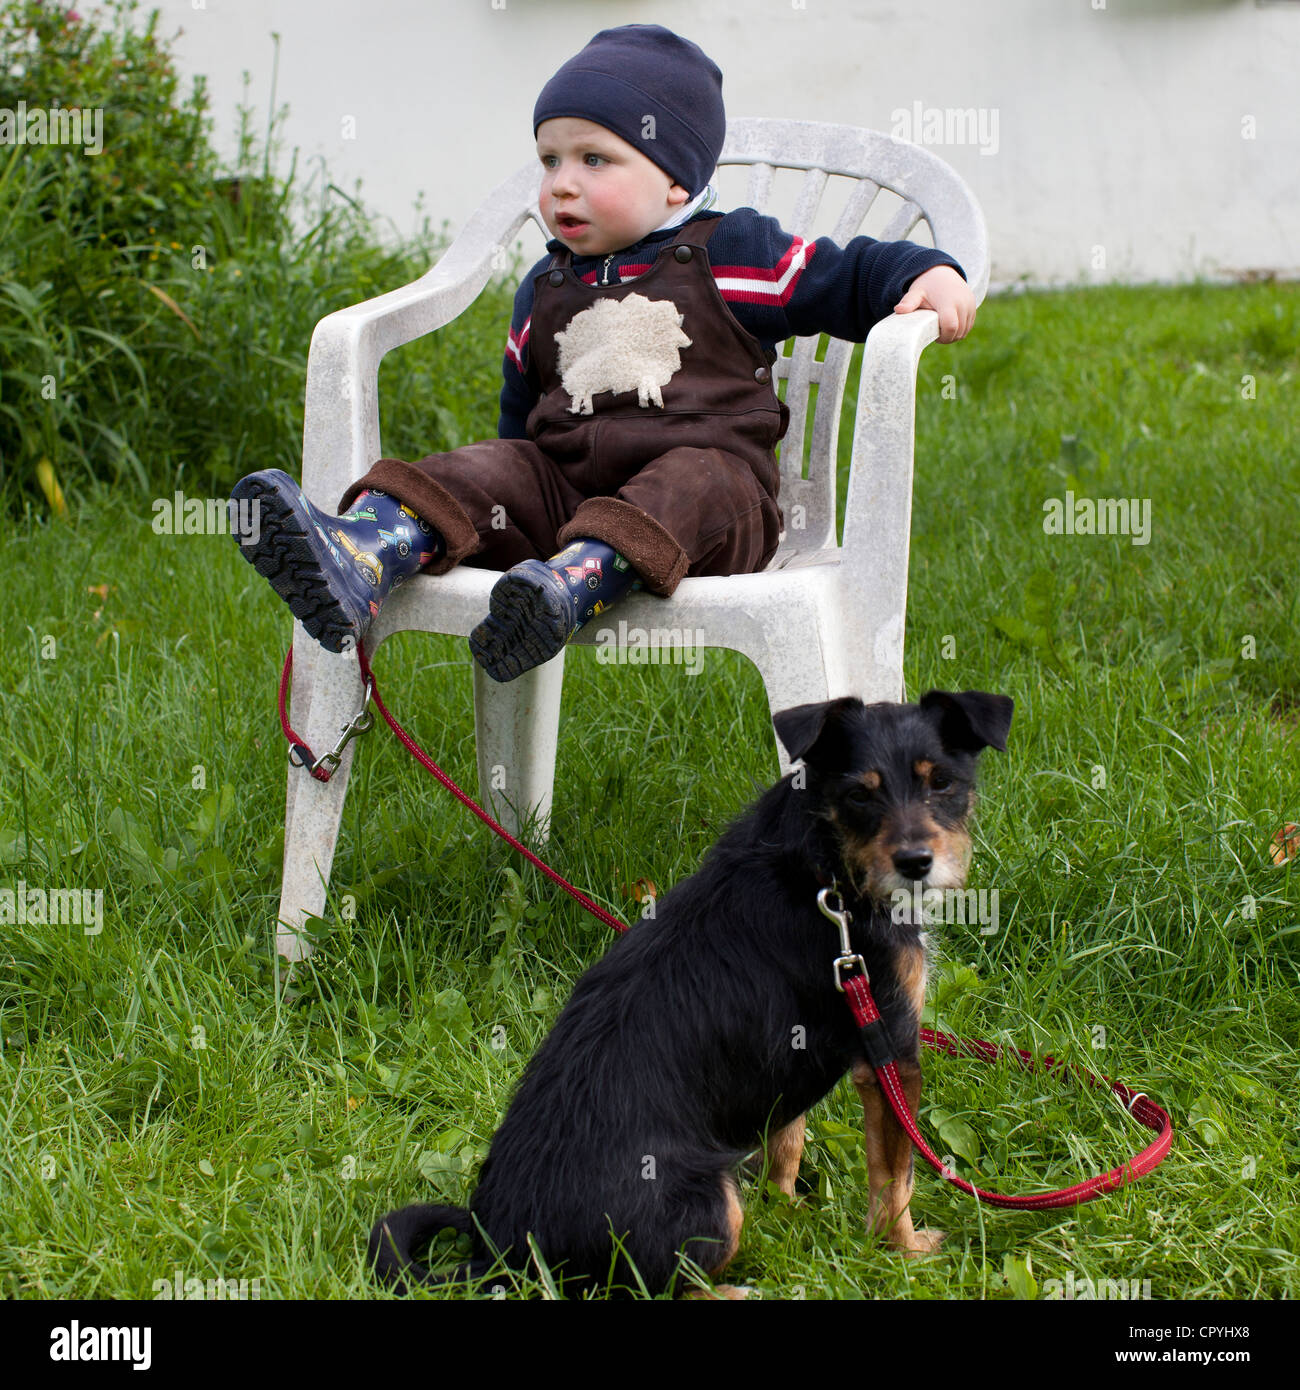 Infant boy (15 months old) sitting on a chair, accompanied by a dog on a lead - Stock Image